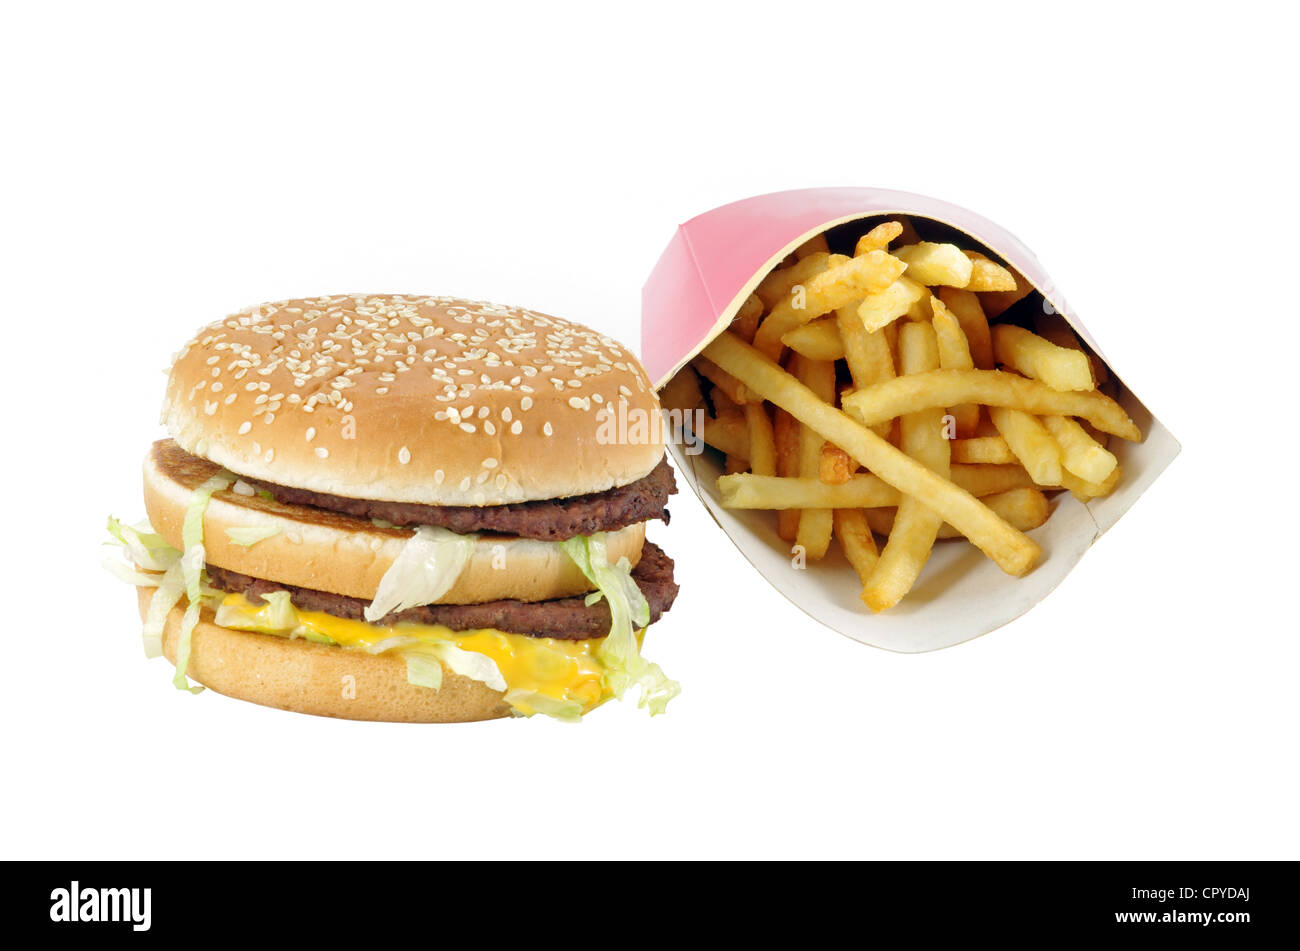 Fast food menu: double burger and french fries - Stock Image